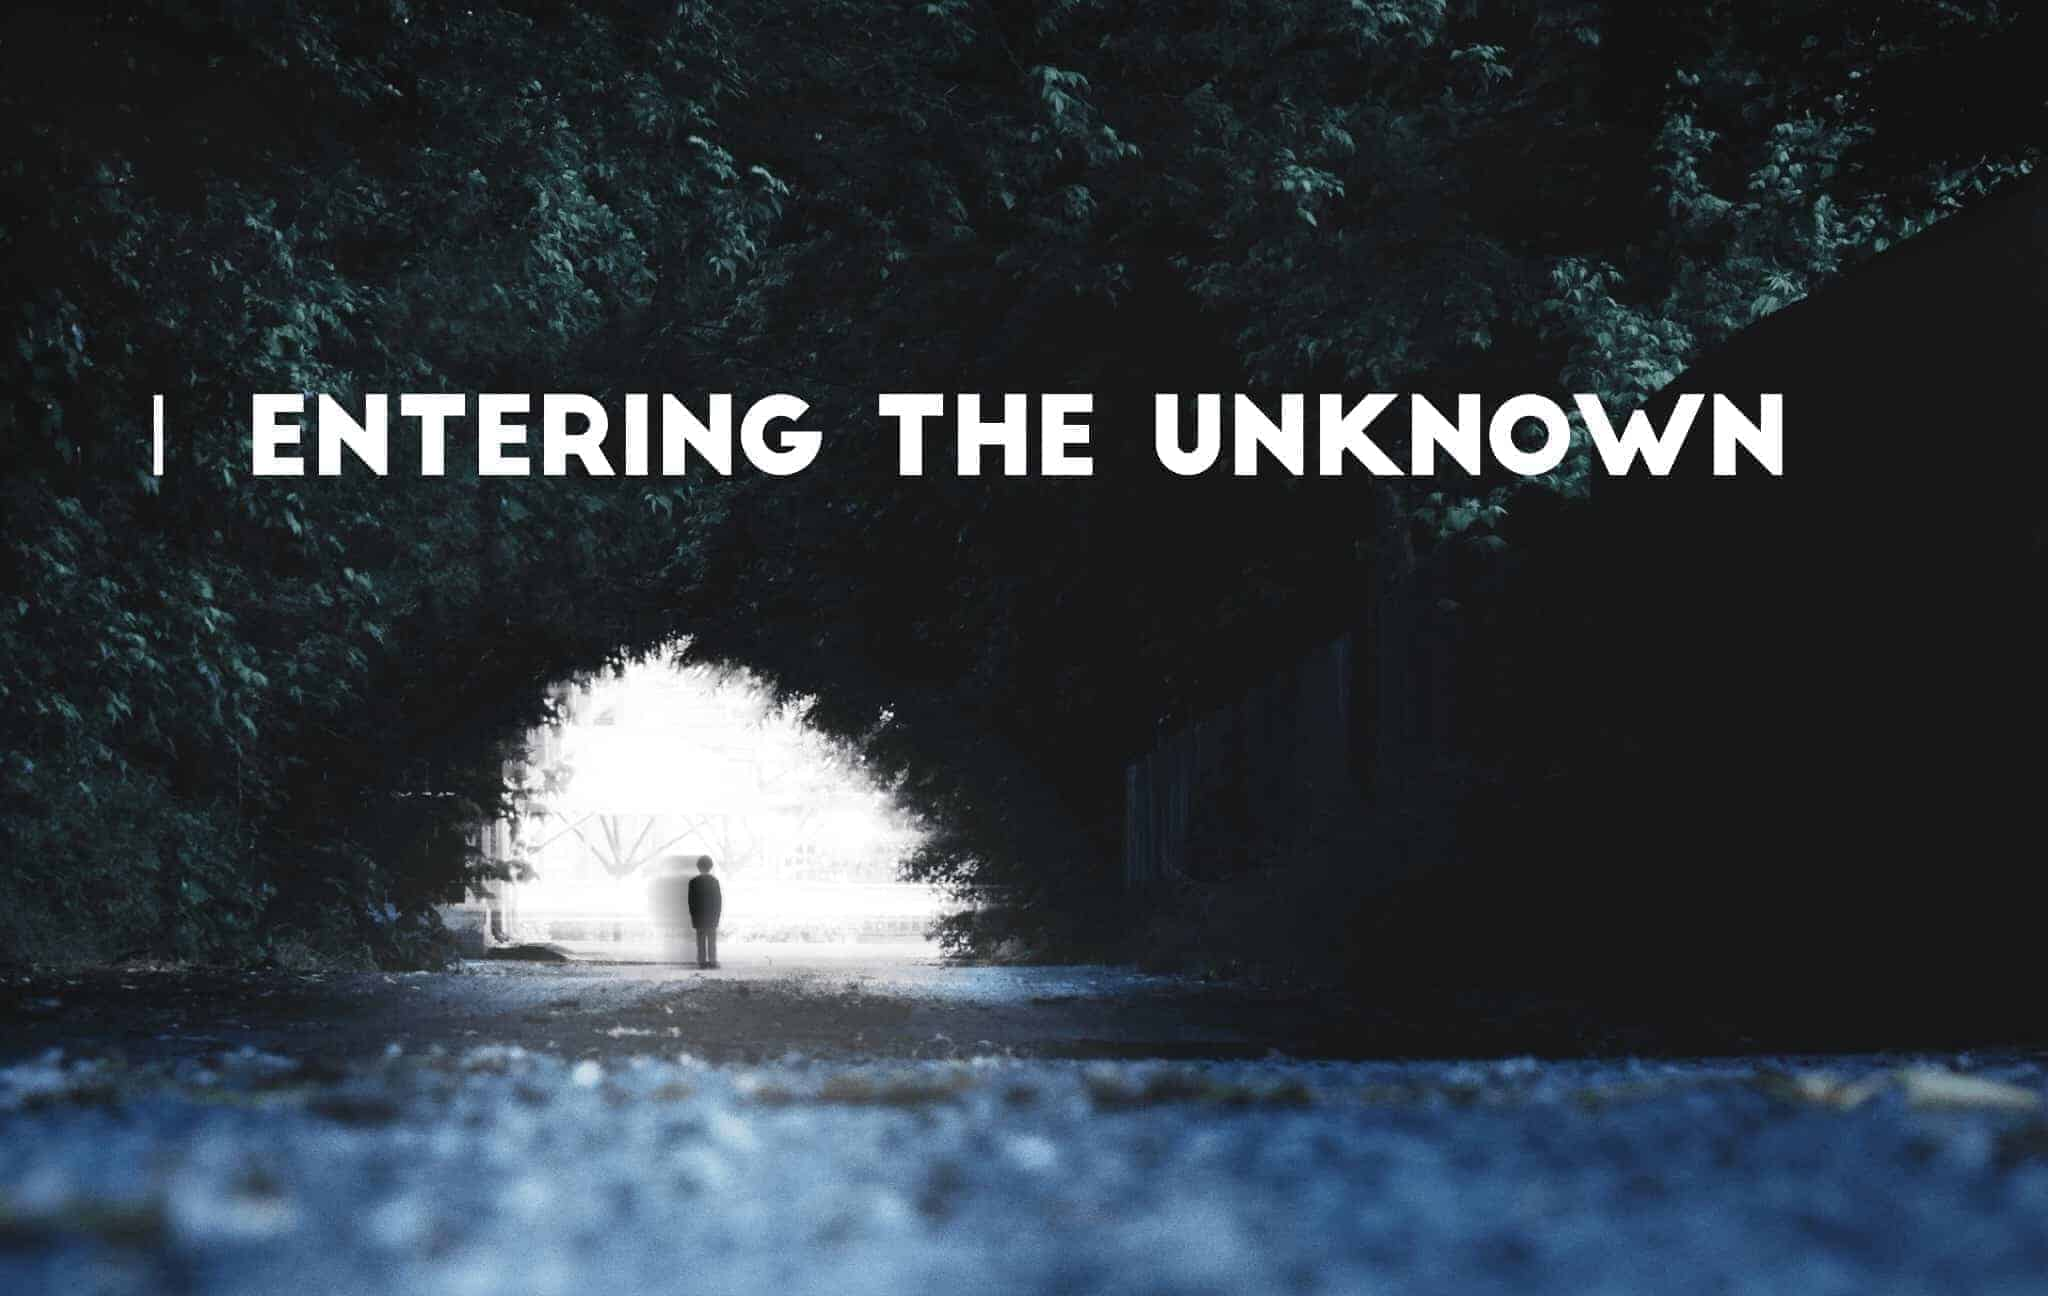 Entering the Unknown – Taking on New Challenges